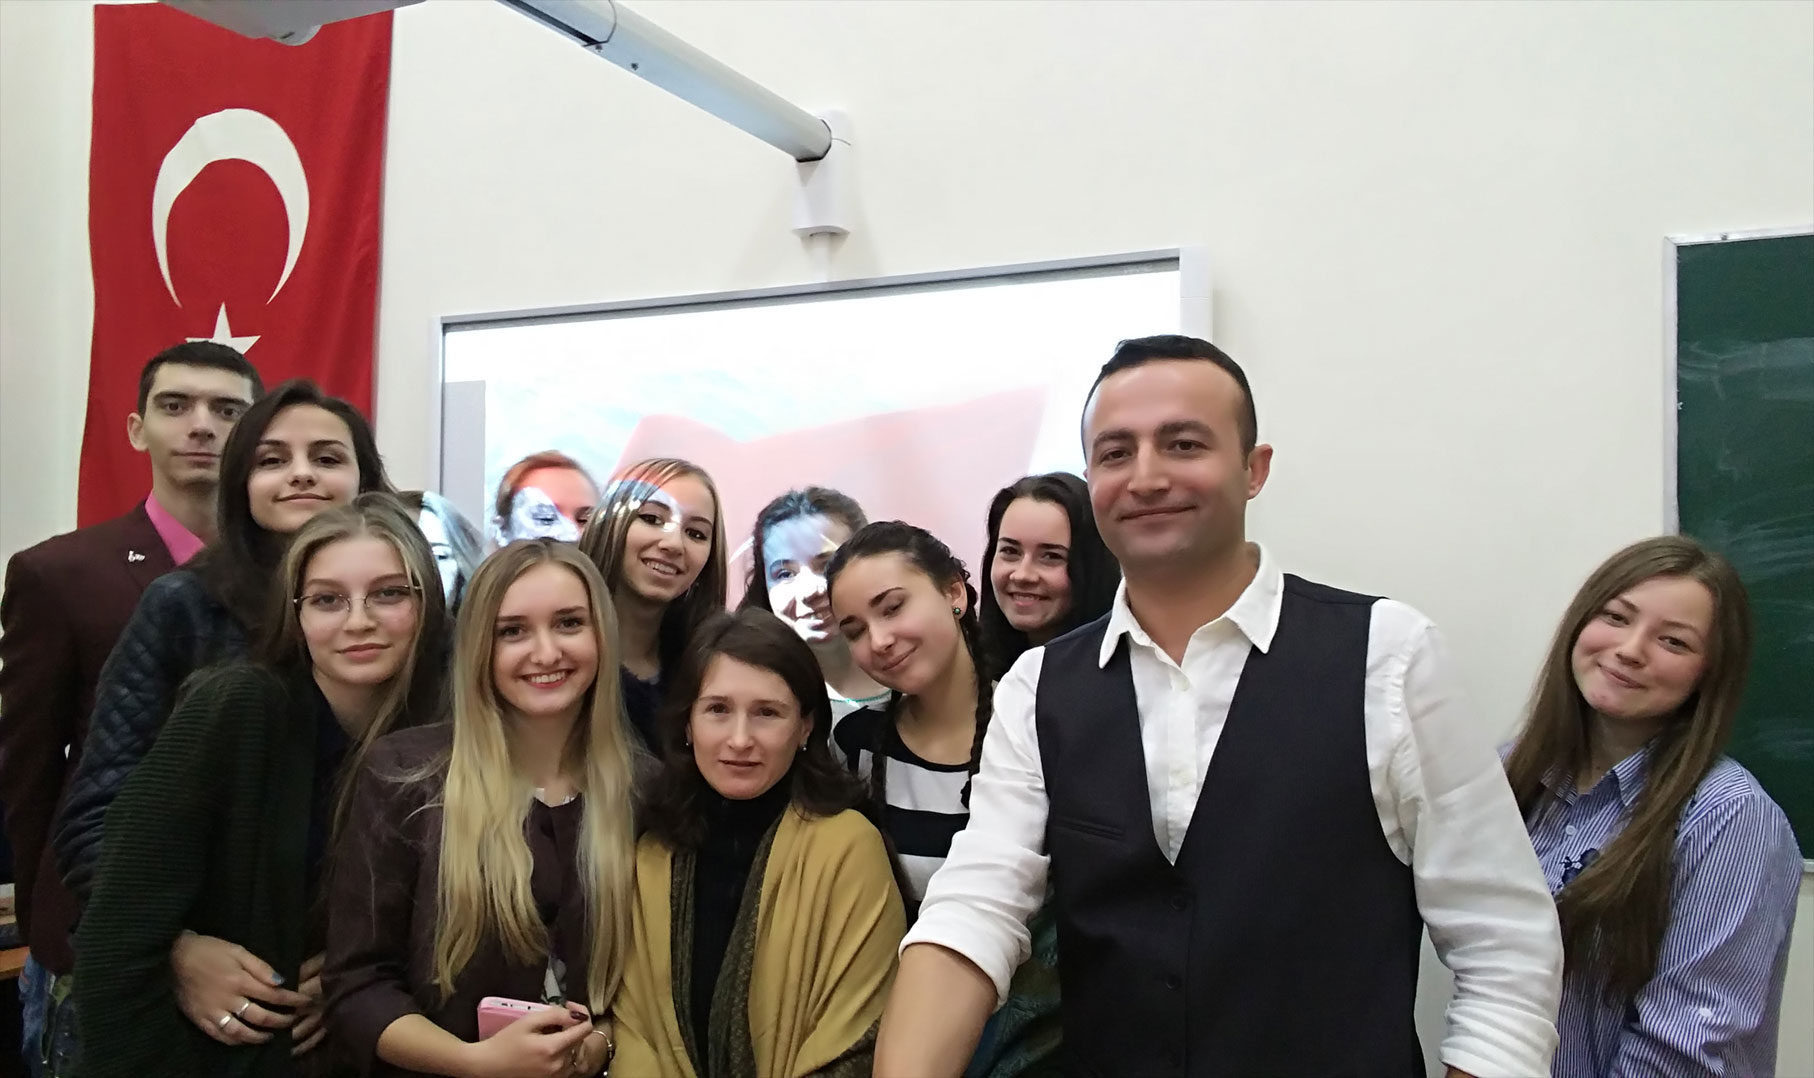 Türk Dili ve Edebiyatı, ivan franko national university of lviv, ivan franko, Lviv, Tika, Turkish language, Турецкий язык, Турецька мова, мову, Туреччина